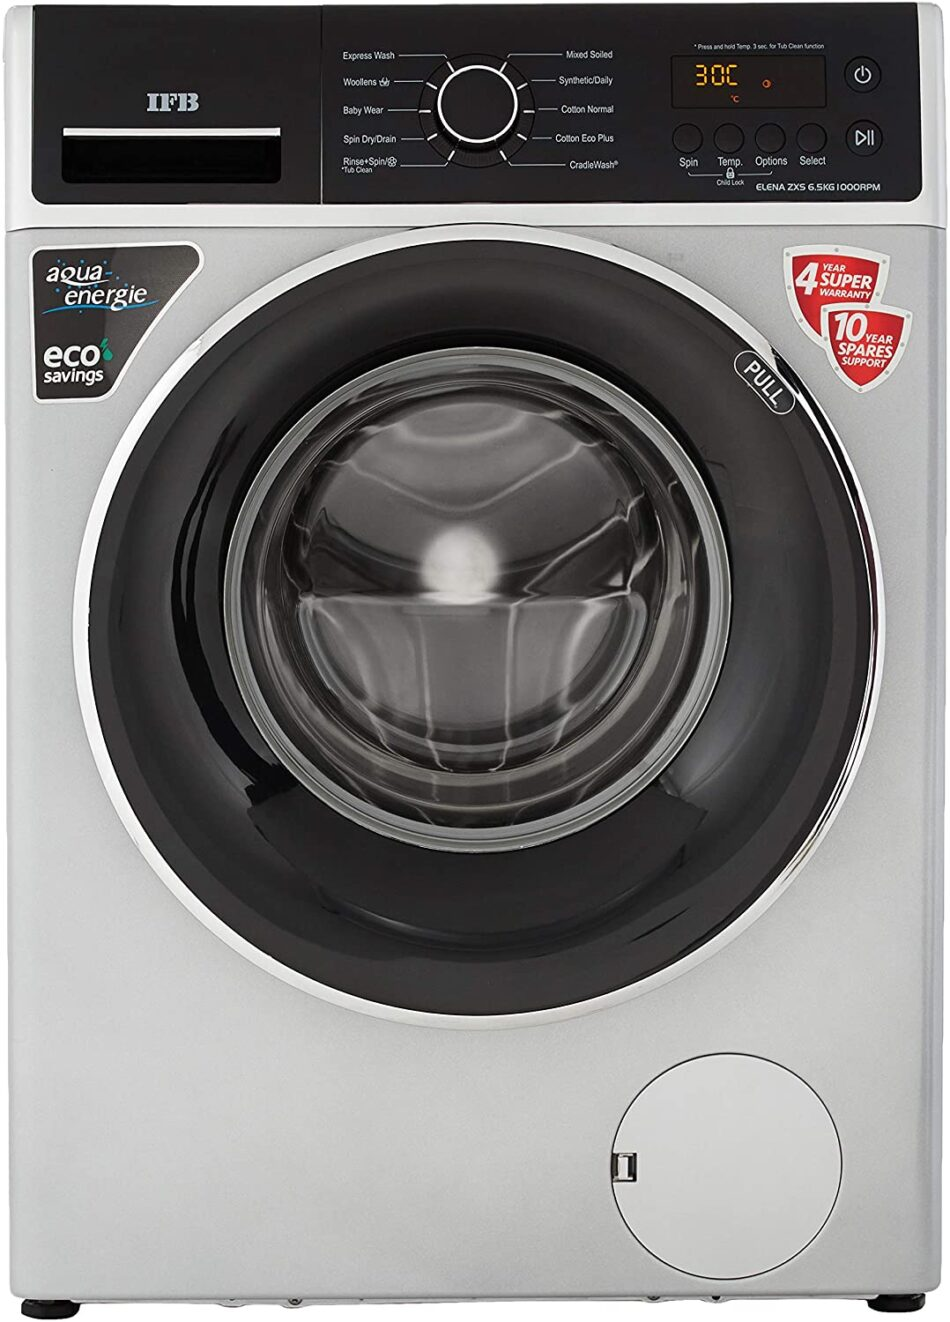 IFB 6.5 Kg 5 Star Fully-Automatic Front Loading Washing Machine (ELENA ZXS, Silver, Inbuilt Heater)